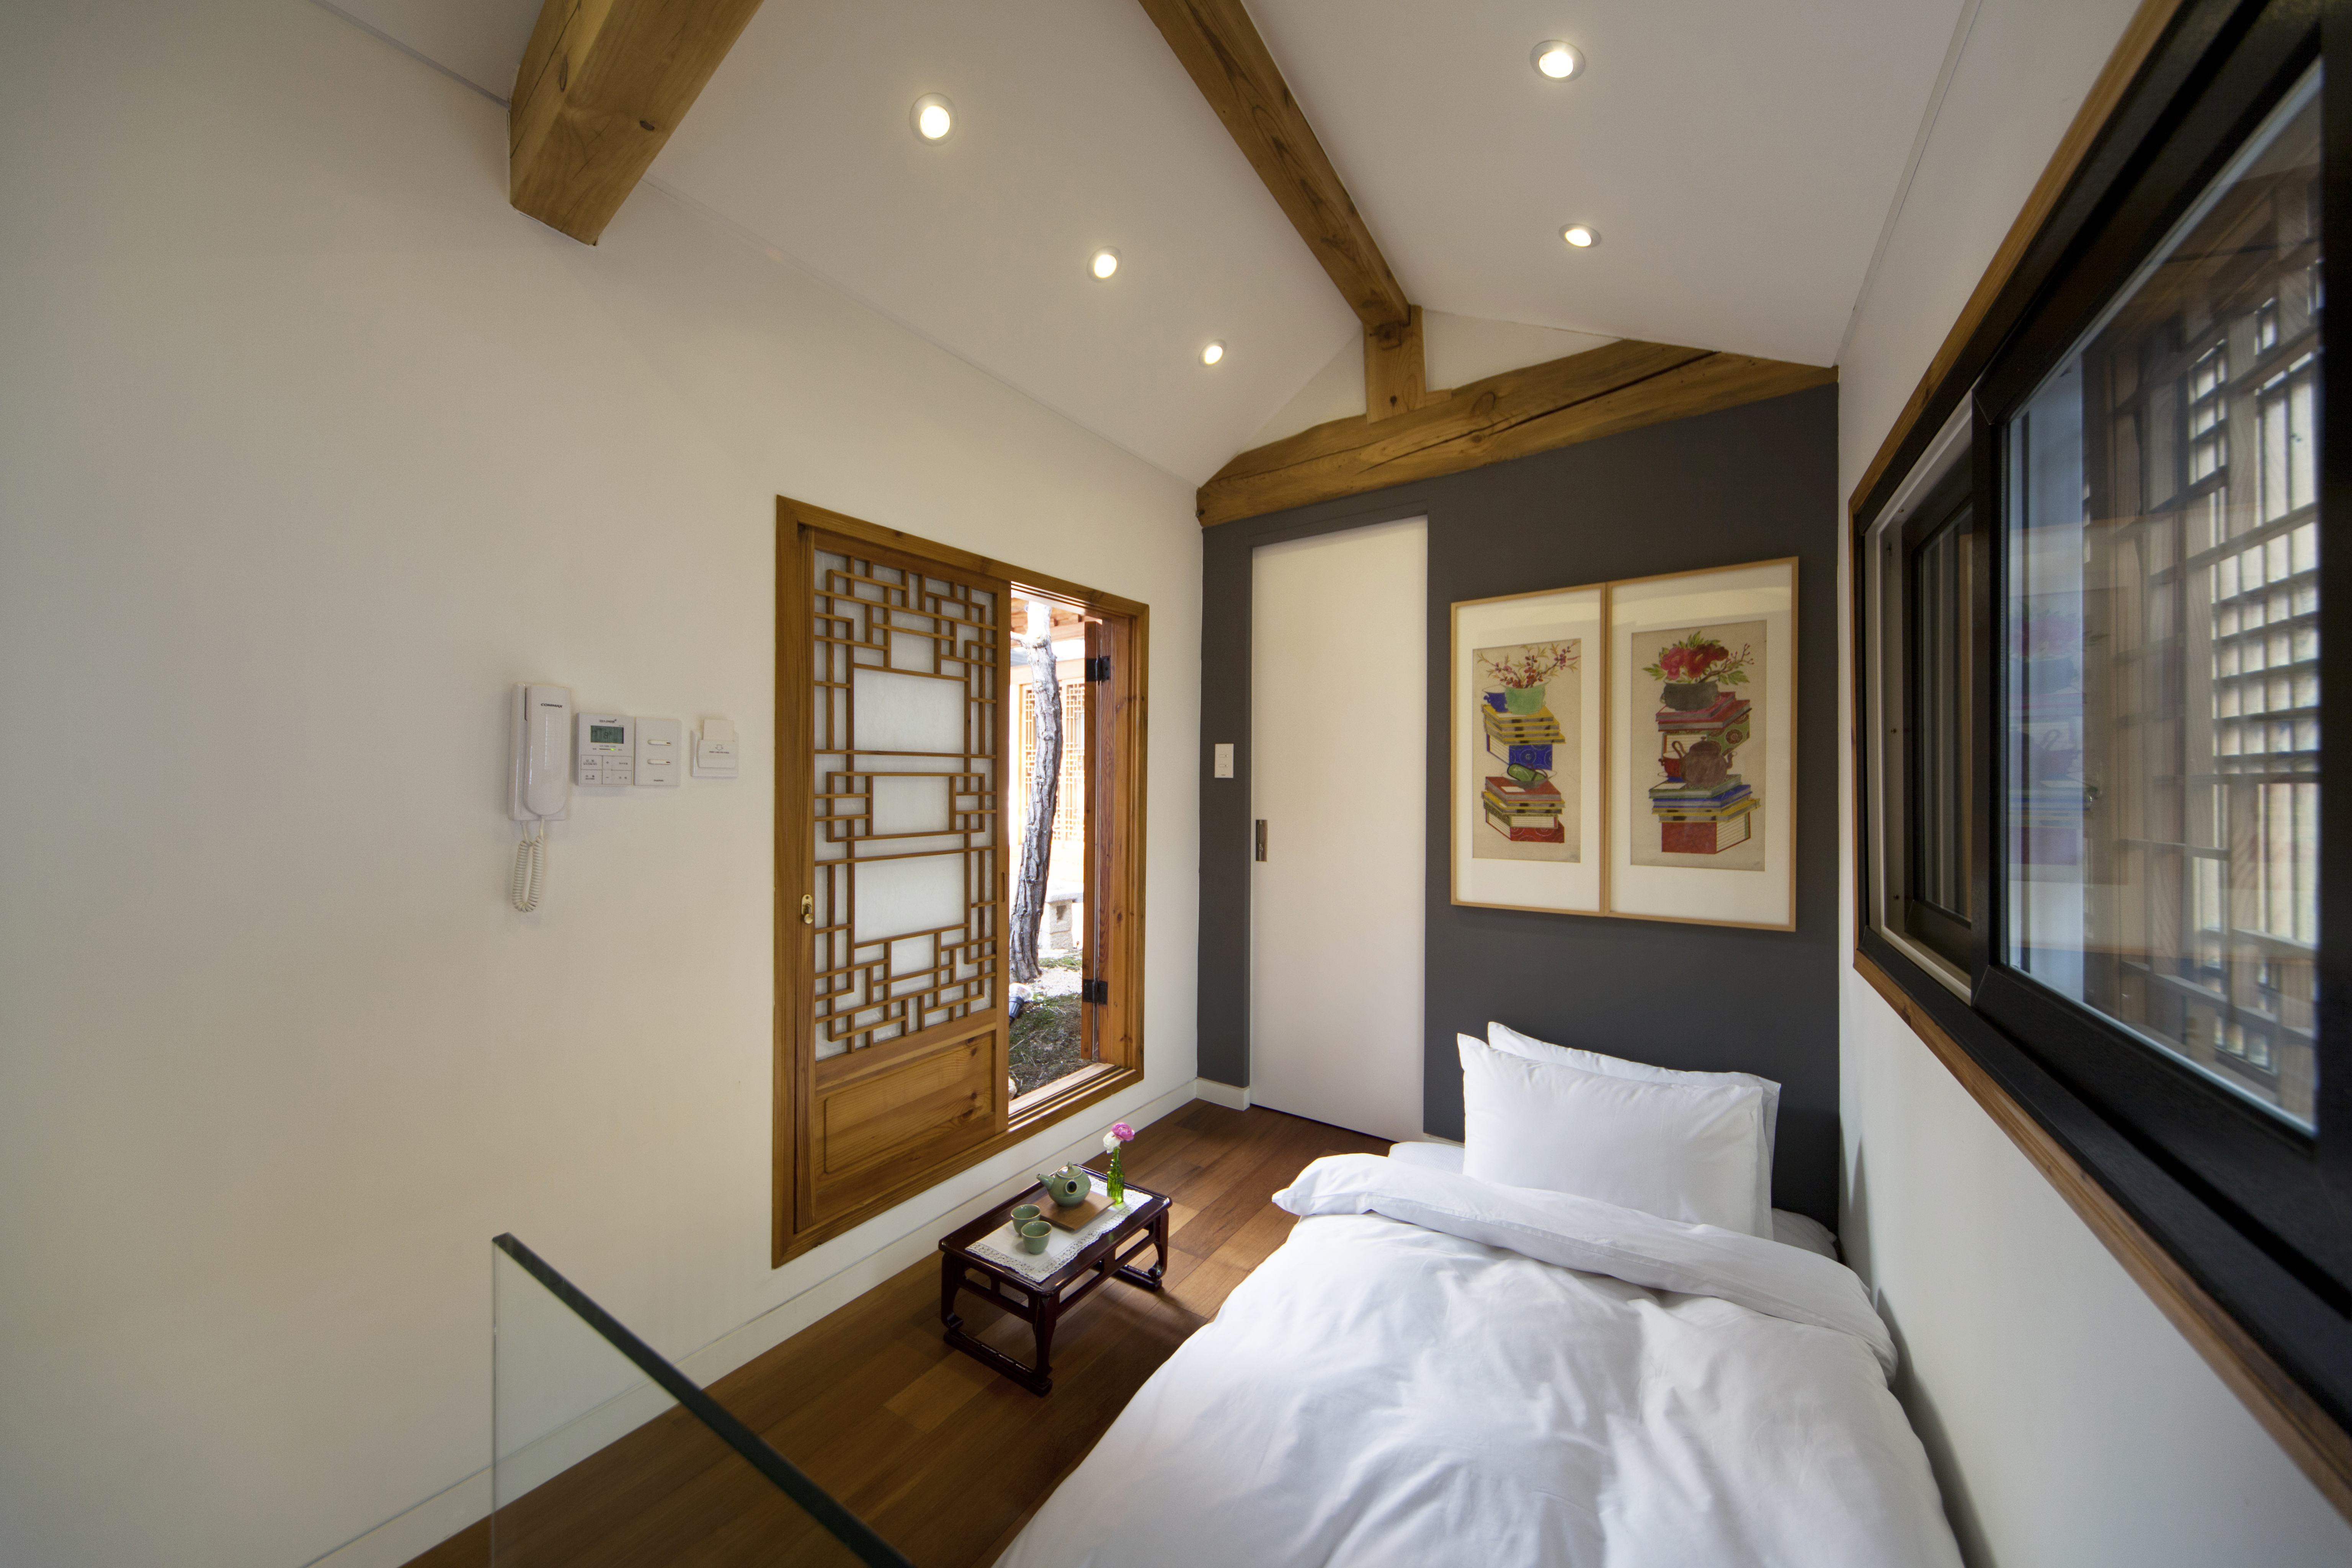 Book Homes In Korea | Find A Unique Space In Korea: Homestay, Guest ...